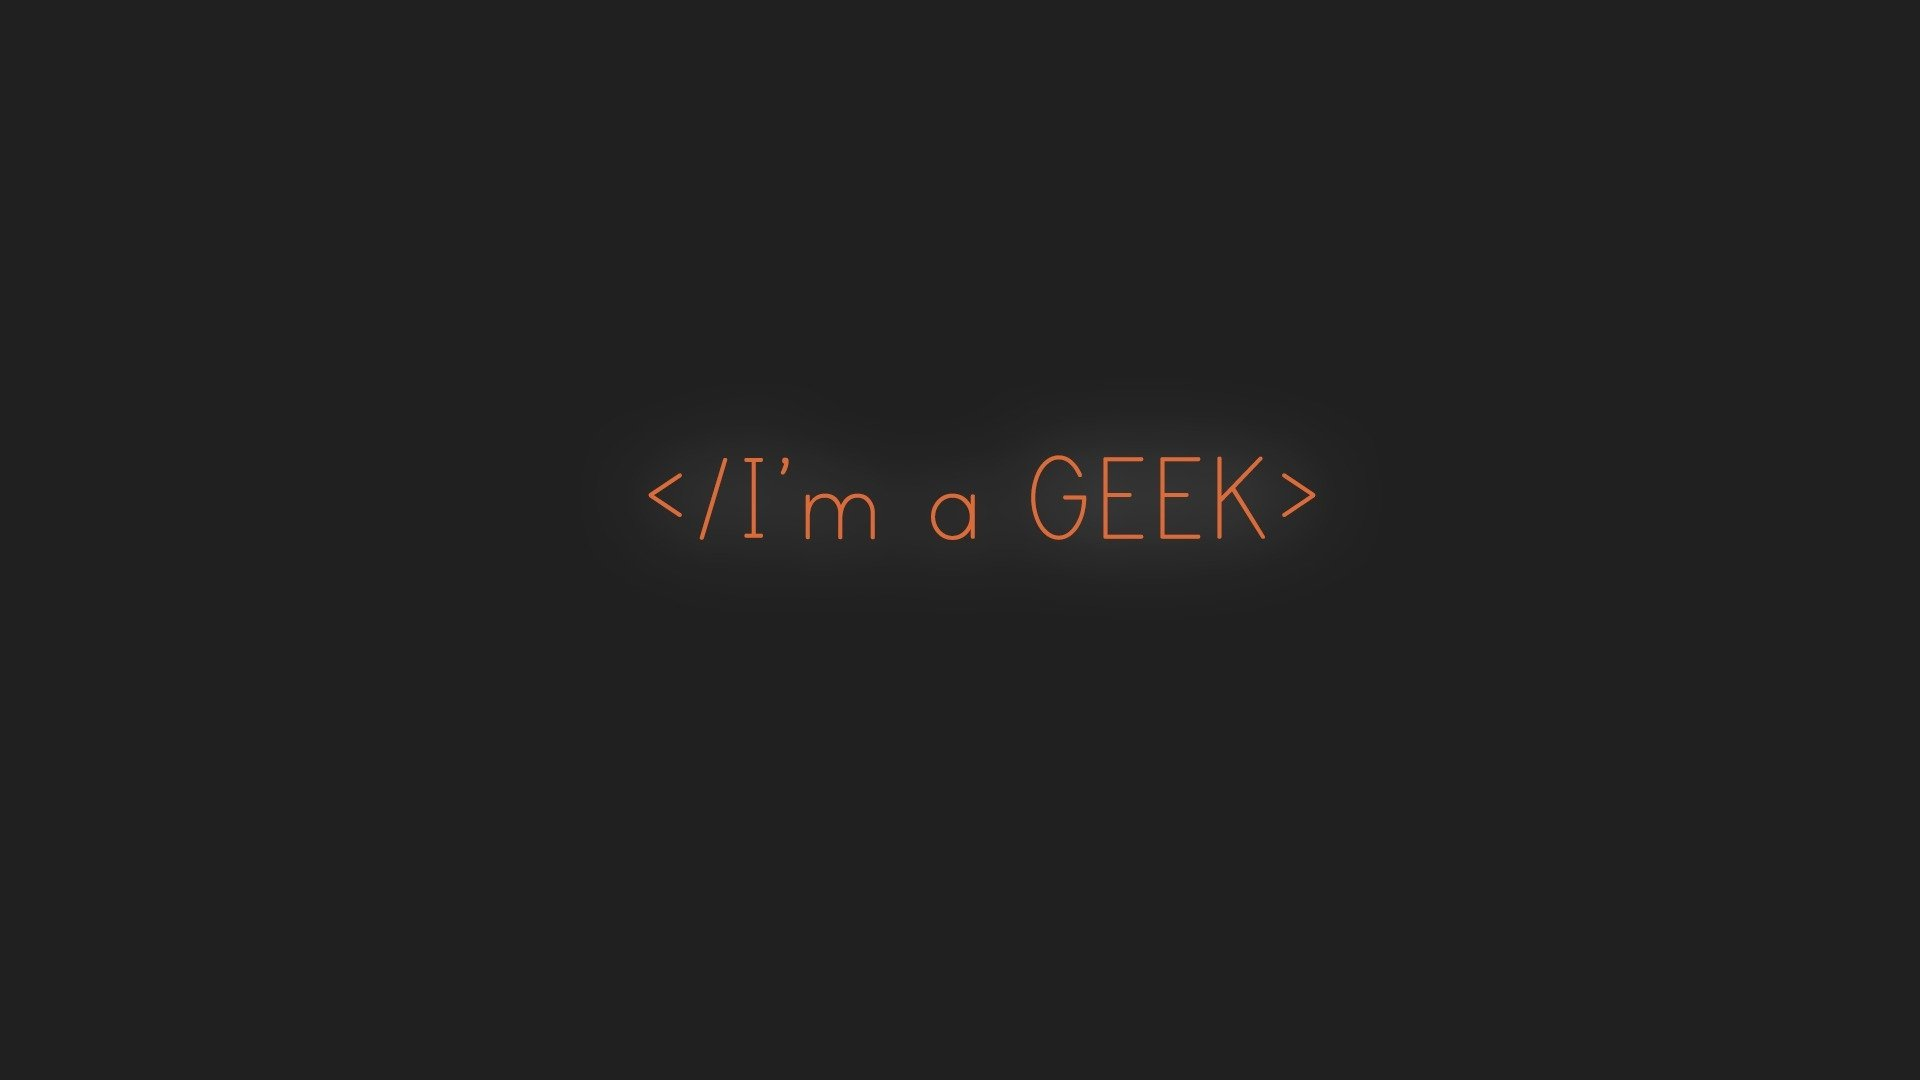 Geek Wallpaper for Computer - WallpaperSafari